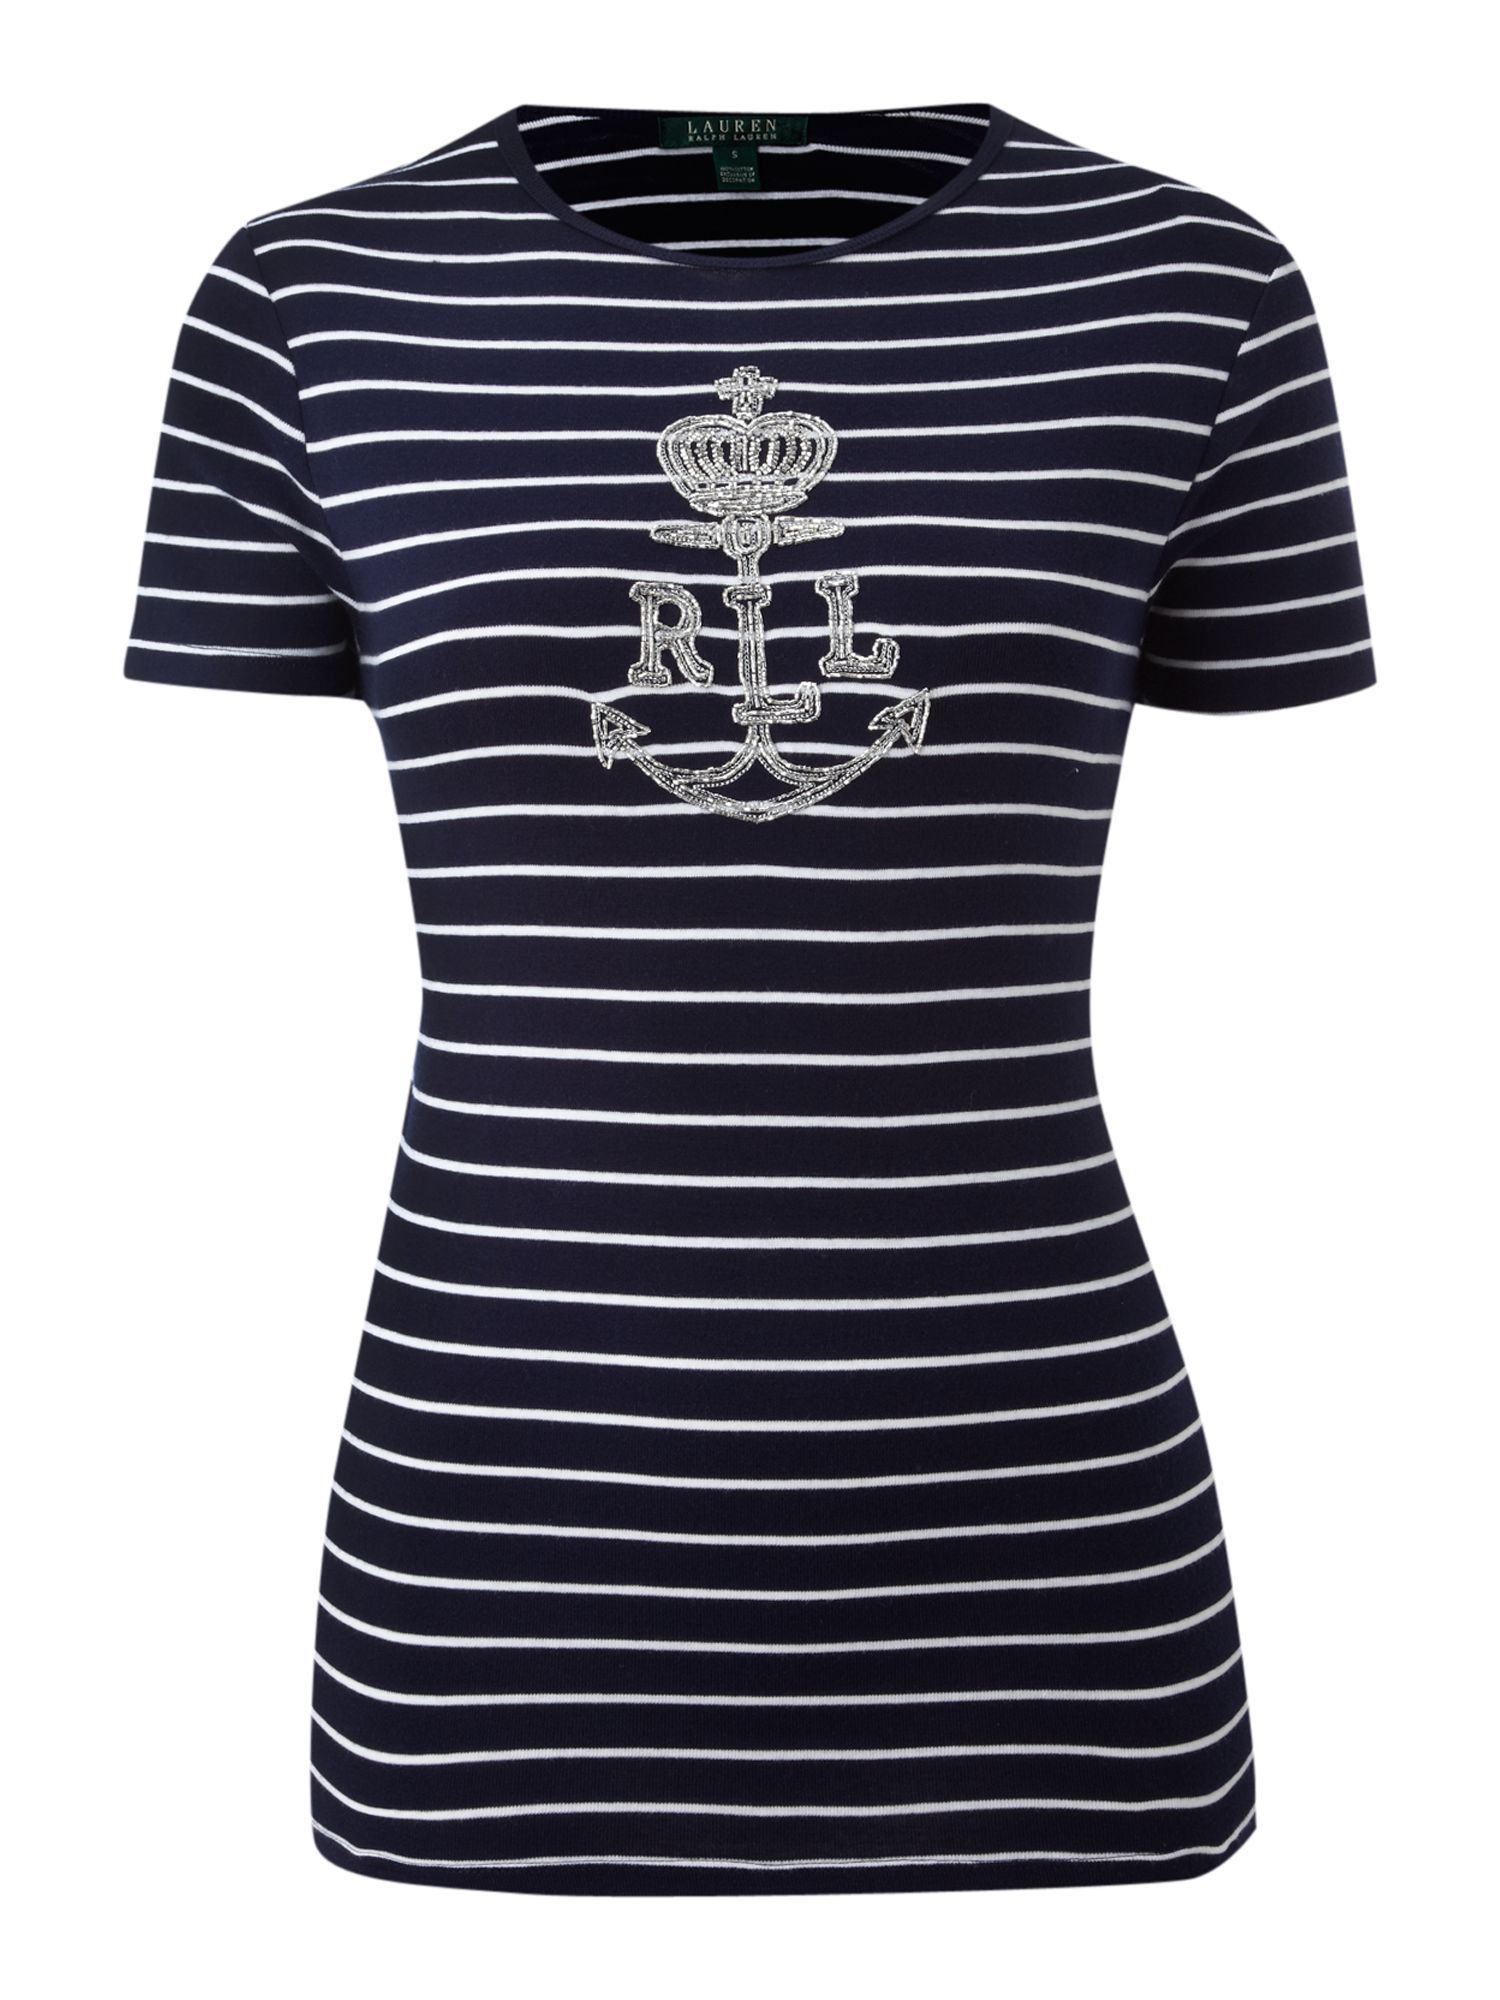 Women's Charissa Short Sleeve Top With Anchor, Navy - neckline: round neck; pattern: horizontal stripes, heavily patterned, print, picture design, patterned/print; waist detail: fitted waist; style: t-shirt; predominant colour: navy; occasions: casual; length: standard; fibres: cotton - 100%; material texture: jersey; fit: body skimming; sleeve length: short sleeve; sleeve style: standard; pattern type: fabric; pattern size: big & busy; texture group: jersey - stretchy/drapey